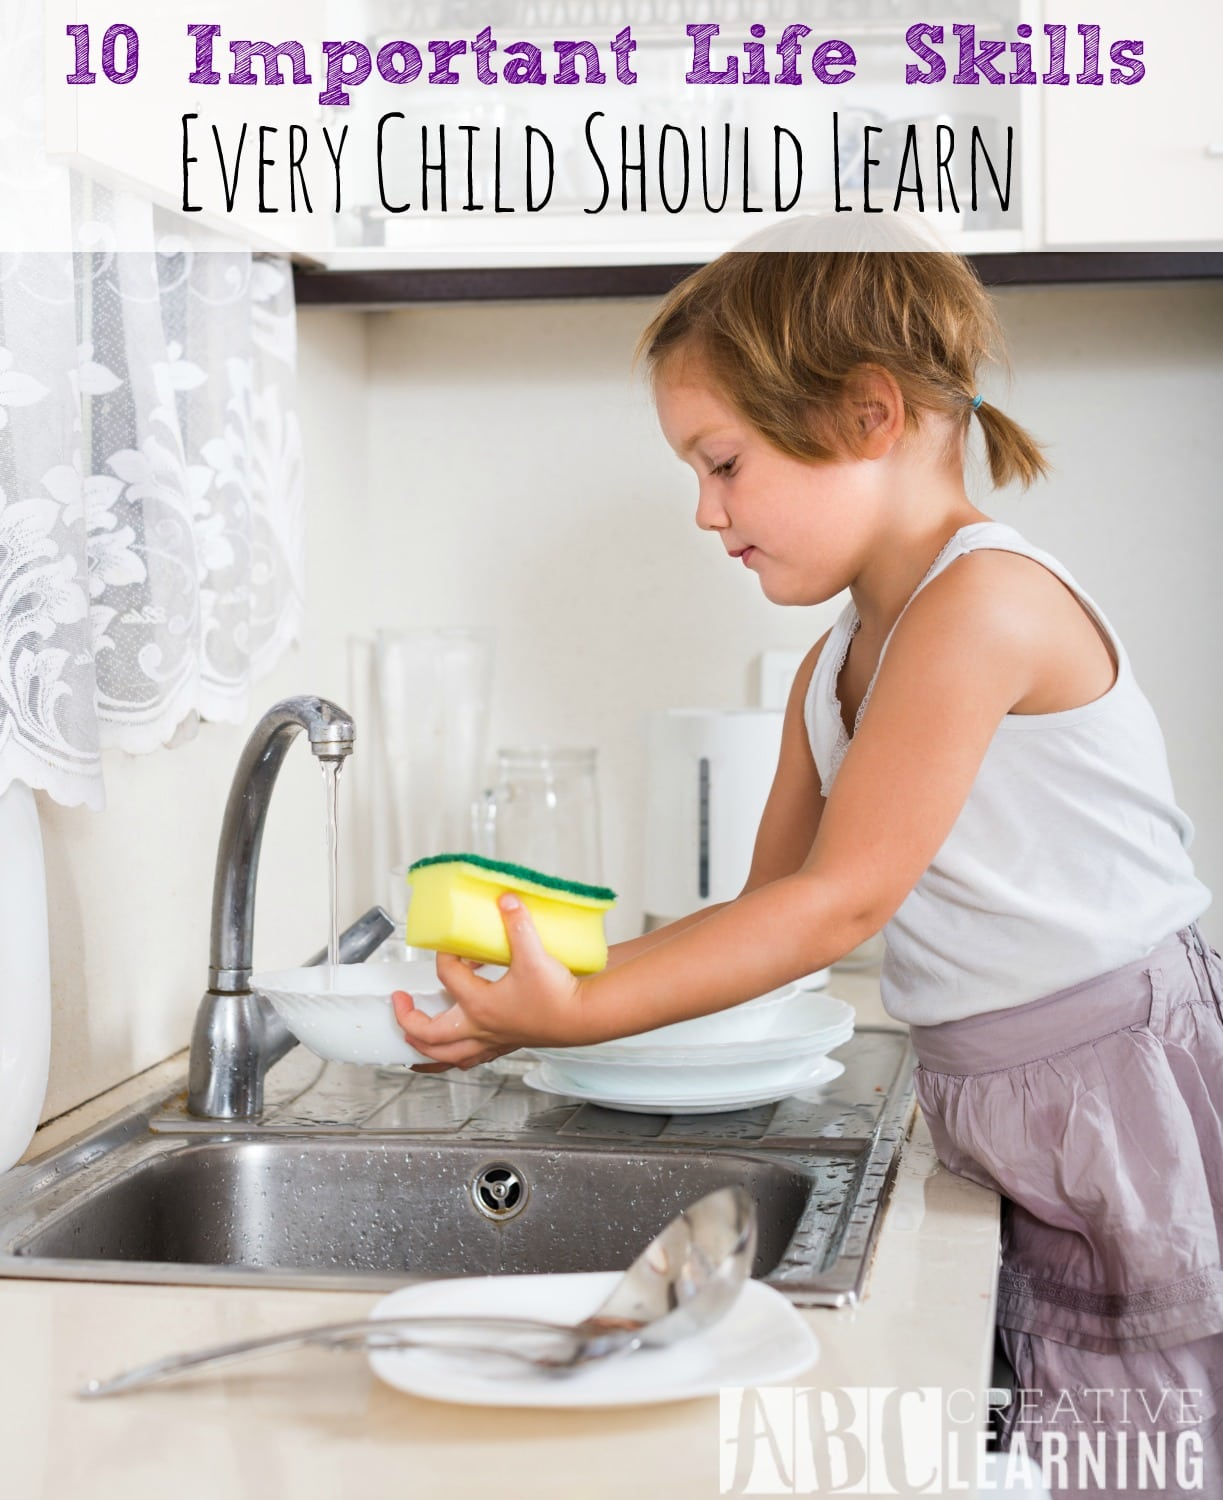 10 Important Life Skills Every Child Should Learn